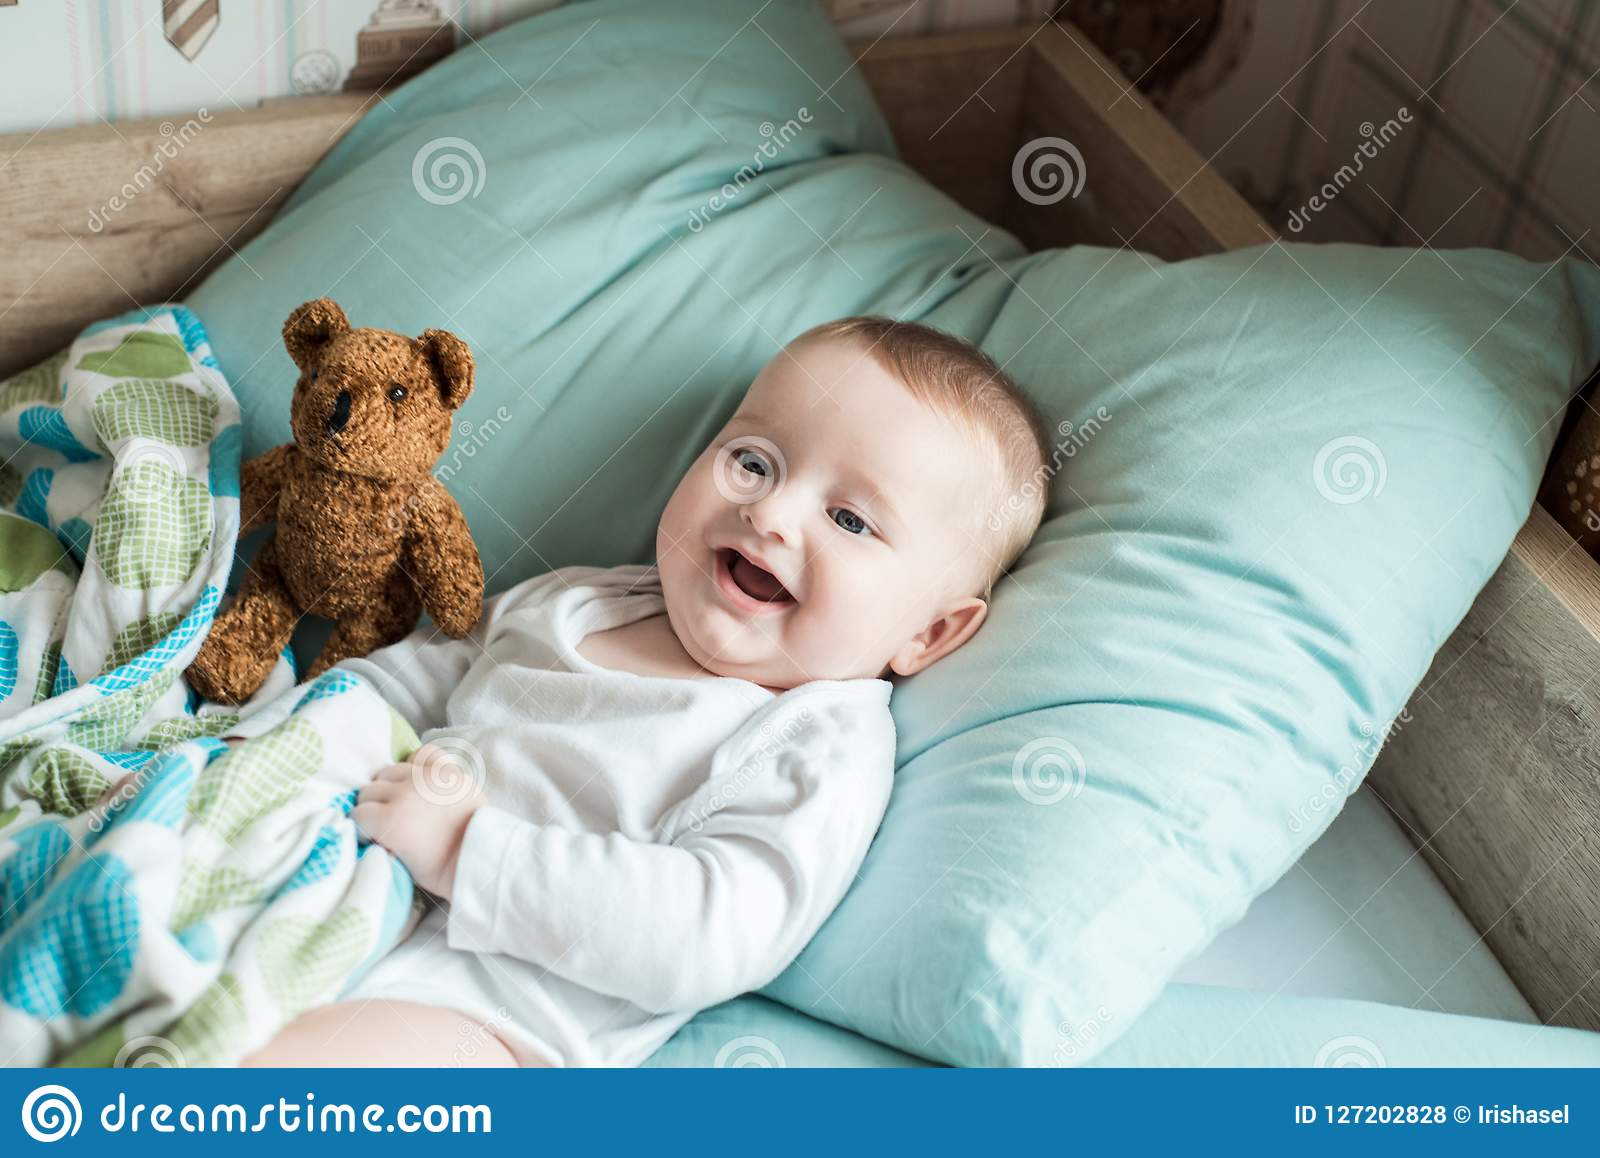 One Year Old Baby Lying In Bed With A Plush Teddy Bear Stock Photo